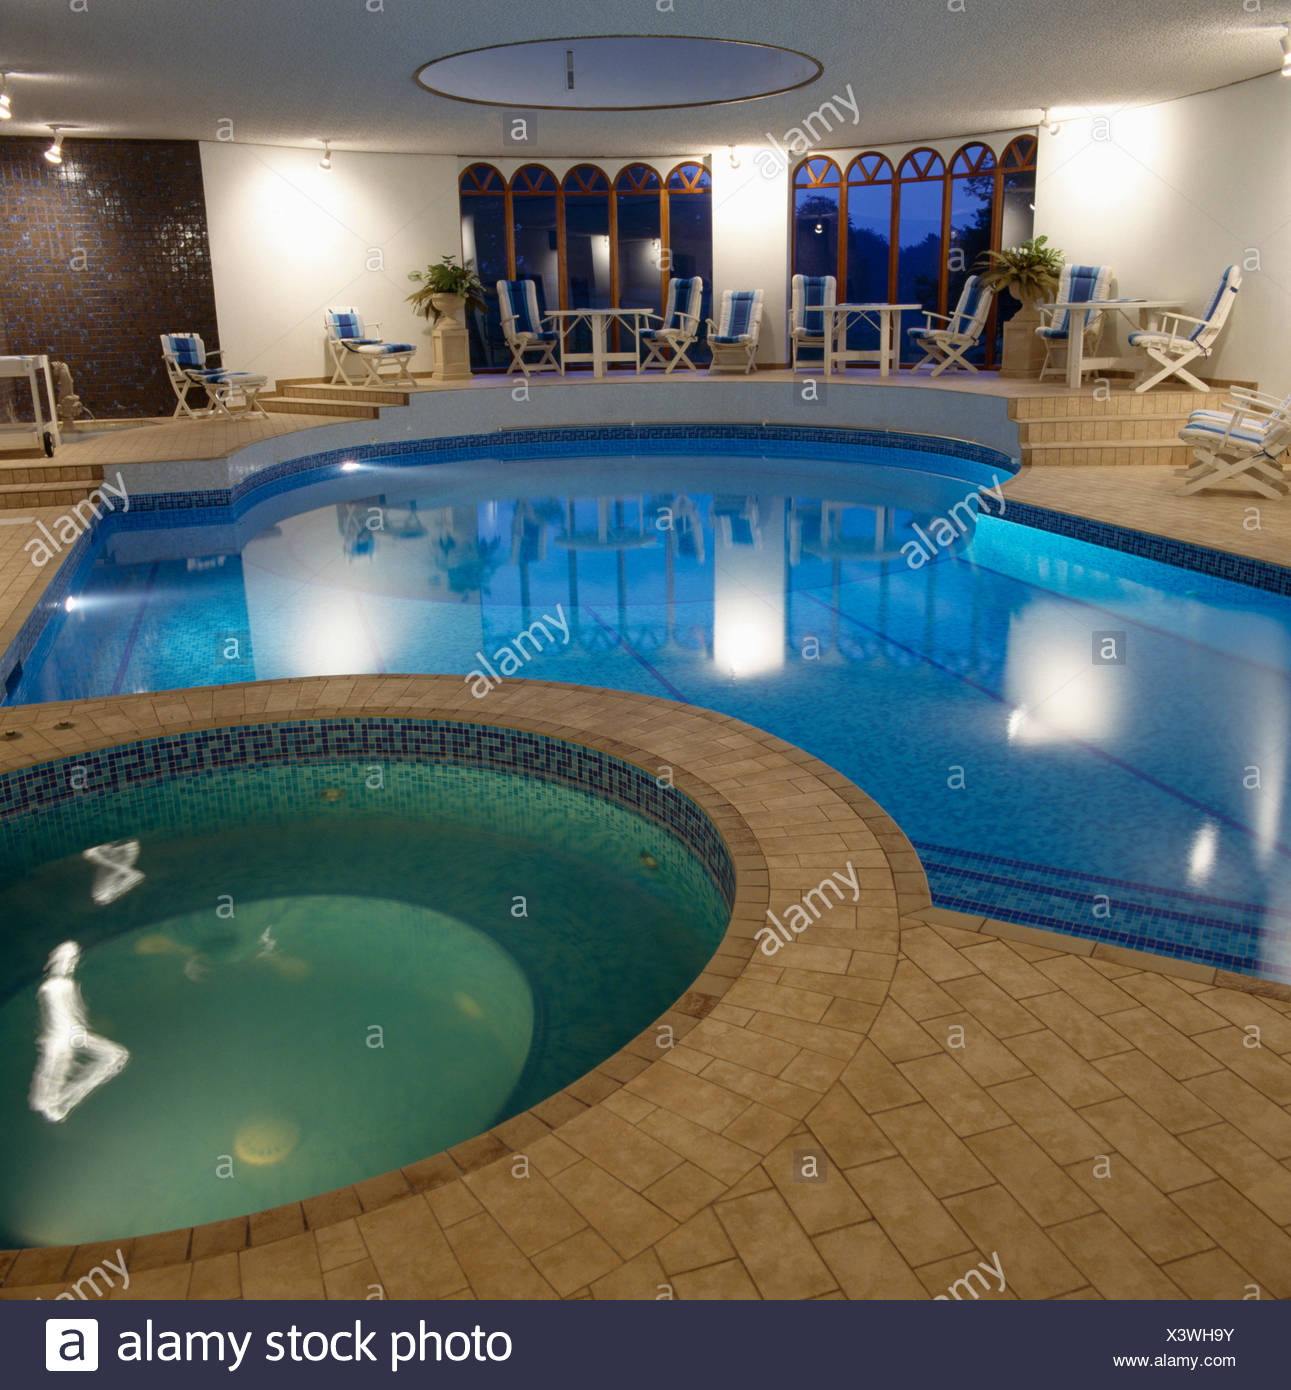 Eighties Private Indoor Swimming Pool With A Jacuzzi Tub Stock Photo Alamy